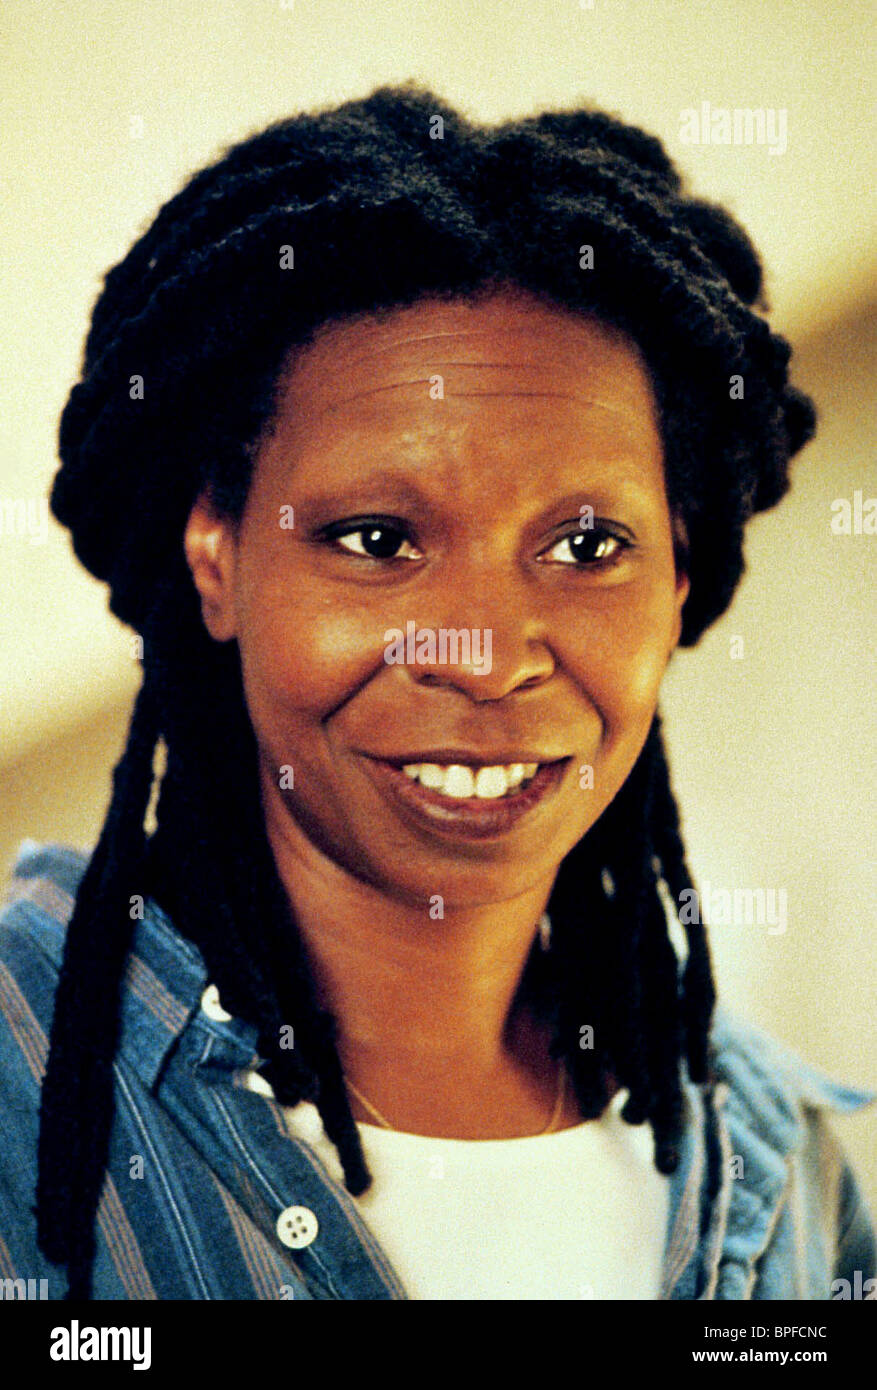 whoopi goldberg - photo #34